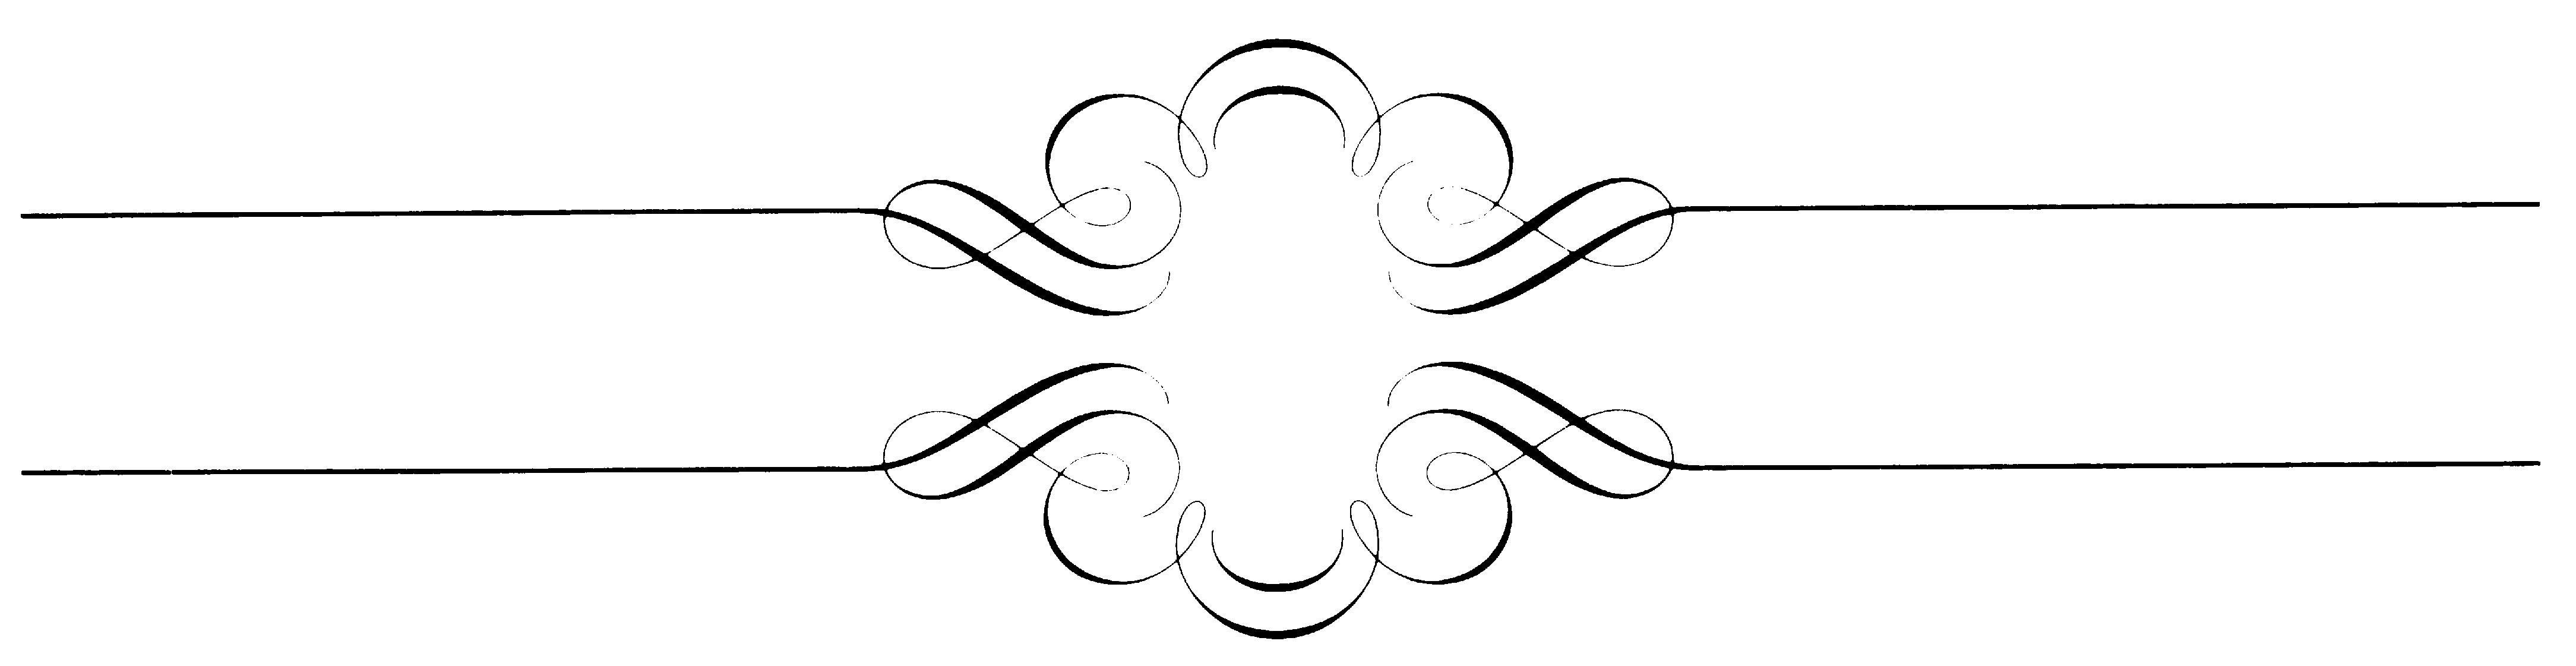 Clipart elegant vector library download Free Elegant Lines Cliparts, Download Free Clip Art, Free Clip Art ... vector library download